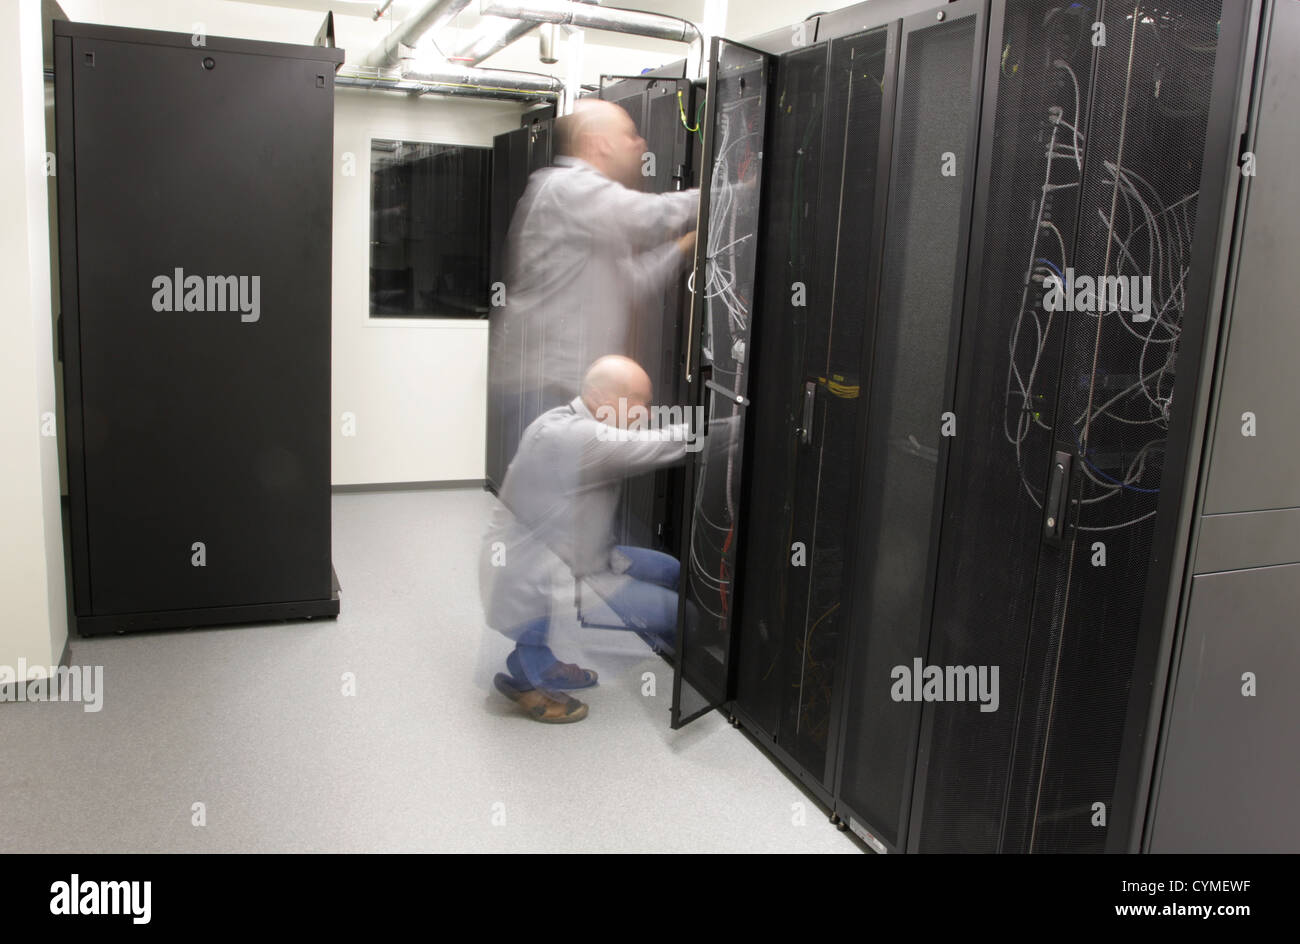 Network technician doing preventive work on a network, long exposure blurres person - Stock Image